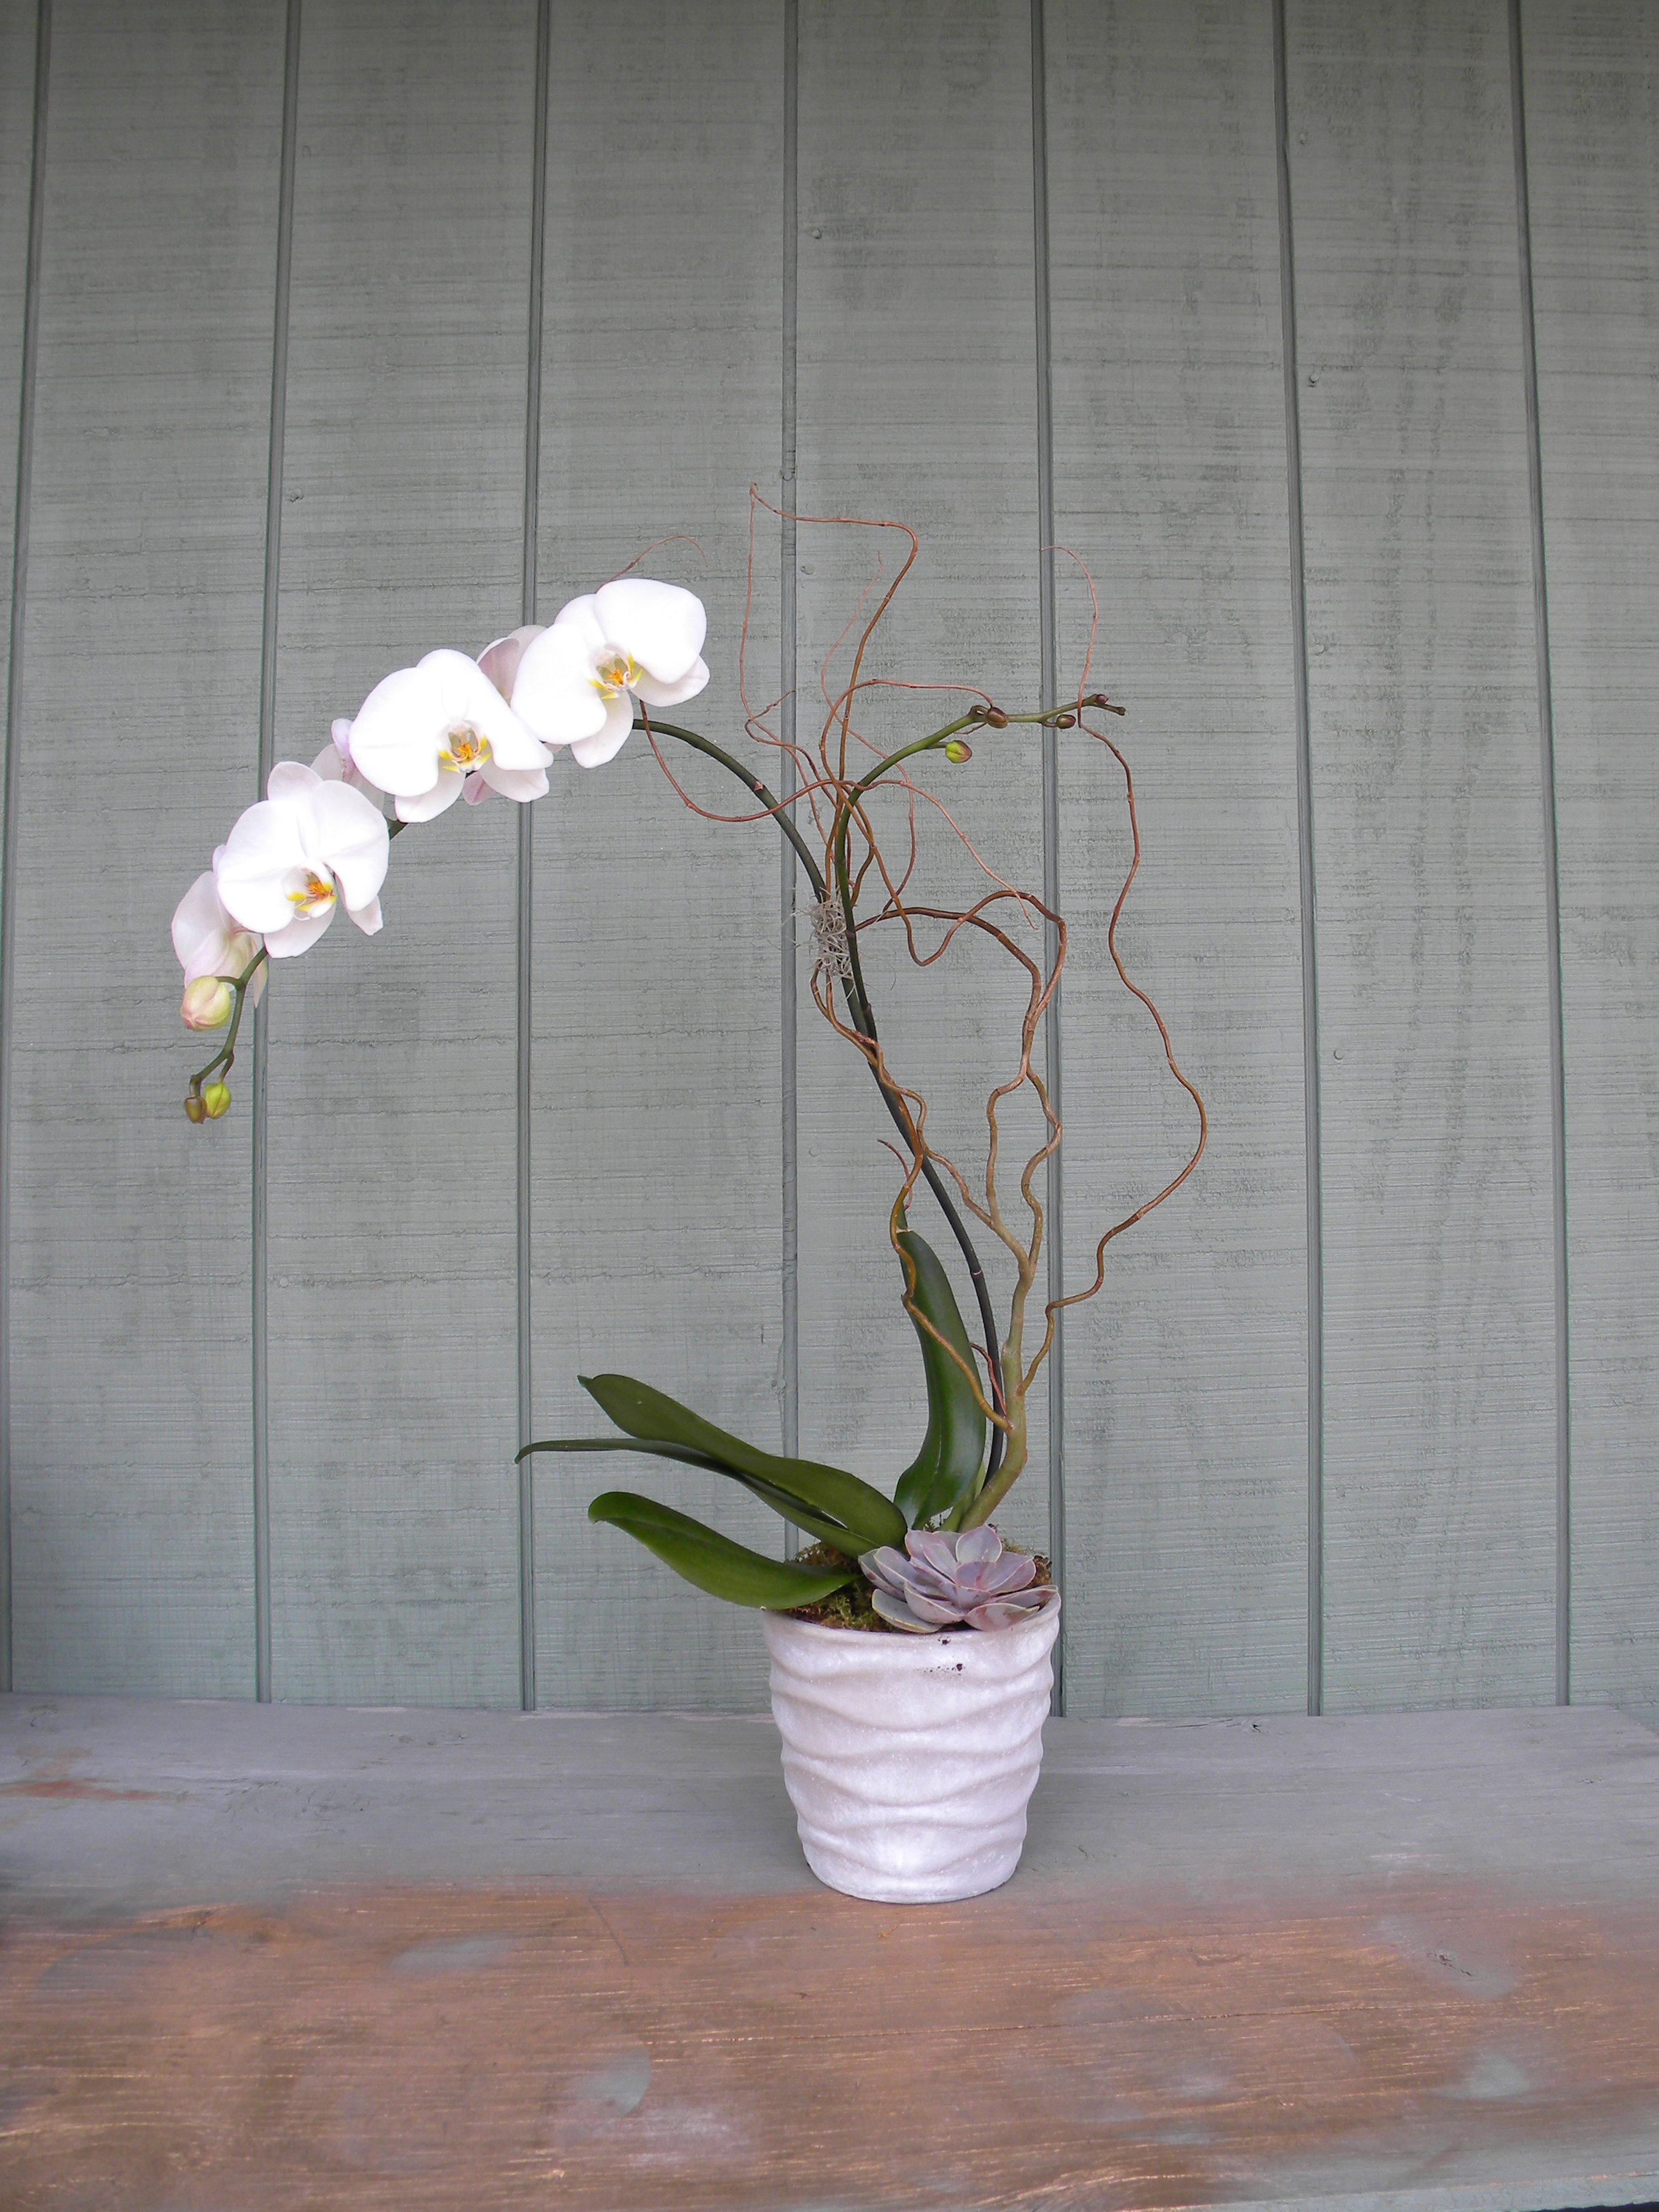 100dollarorchid.jpg